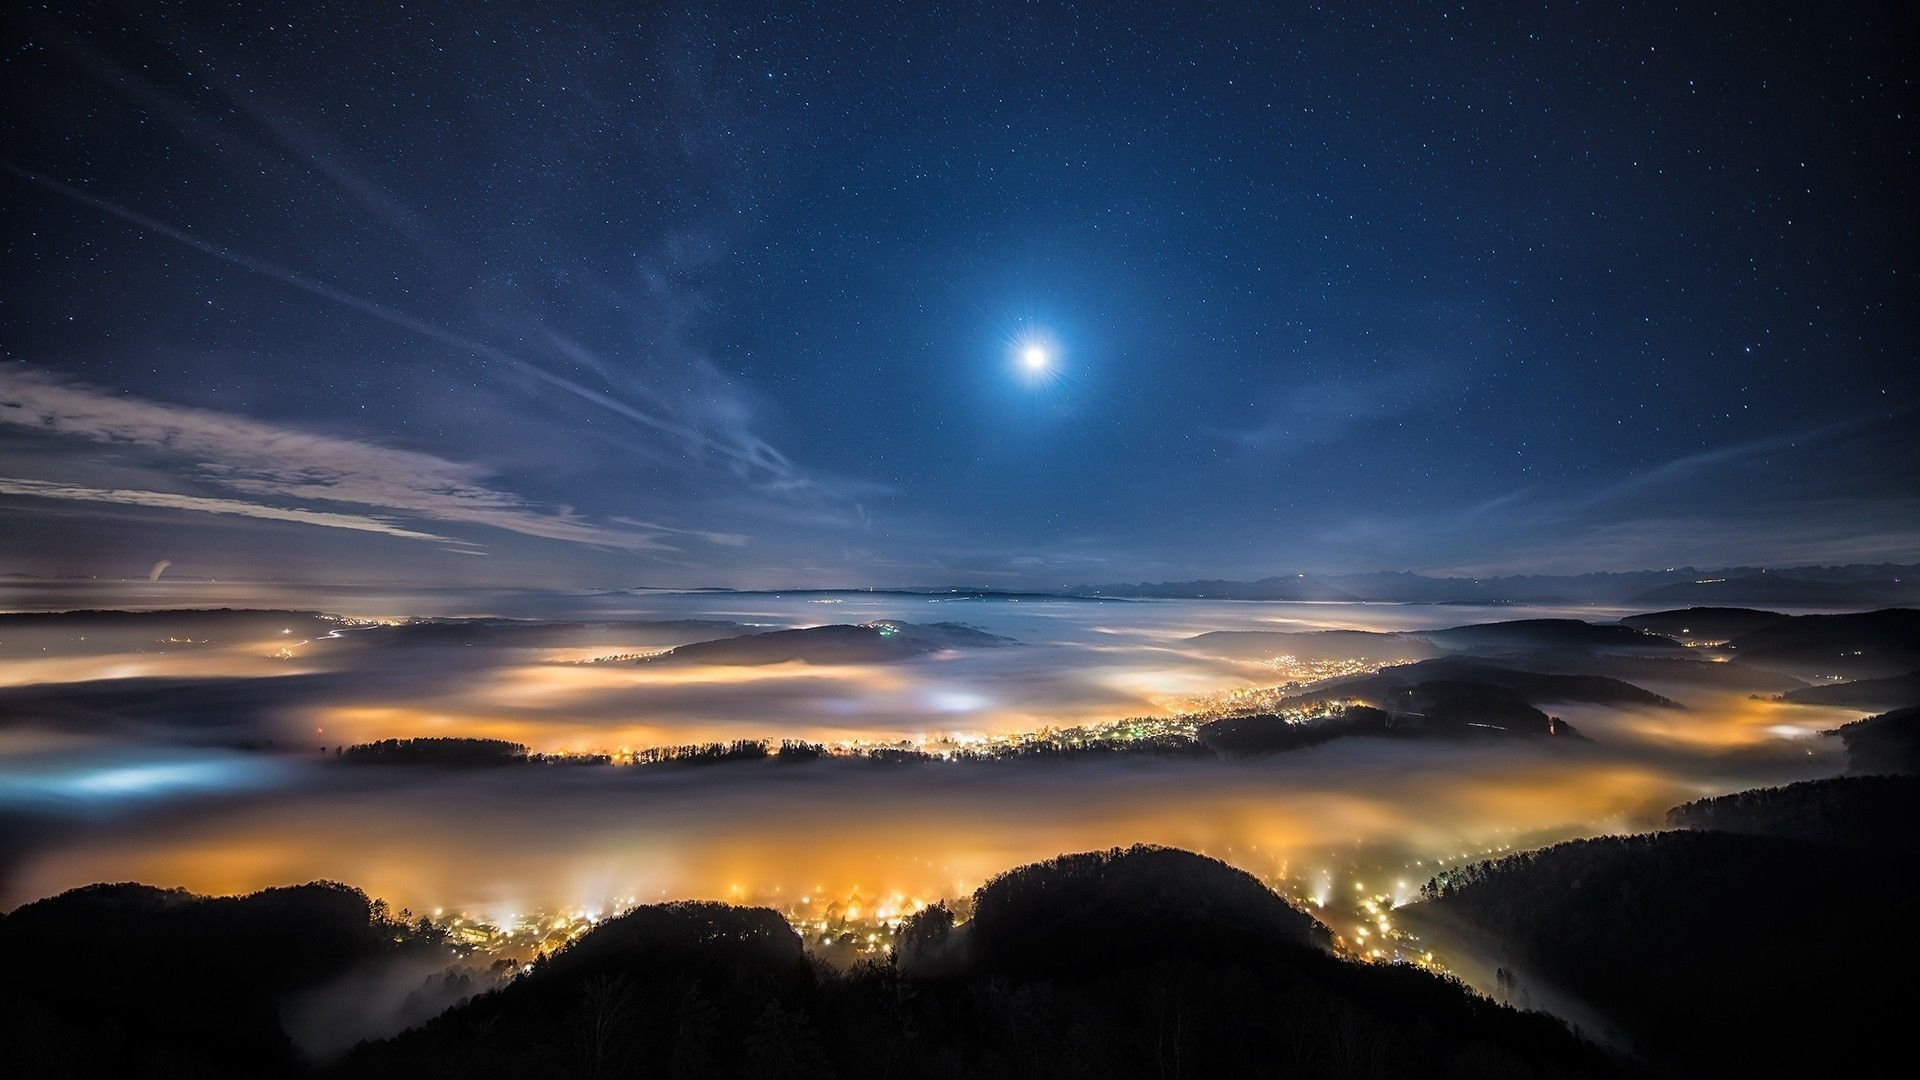 night-sky-moon-star-city-valley-mountain.jpg